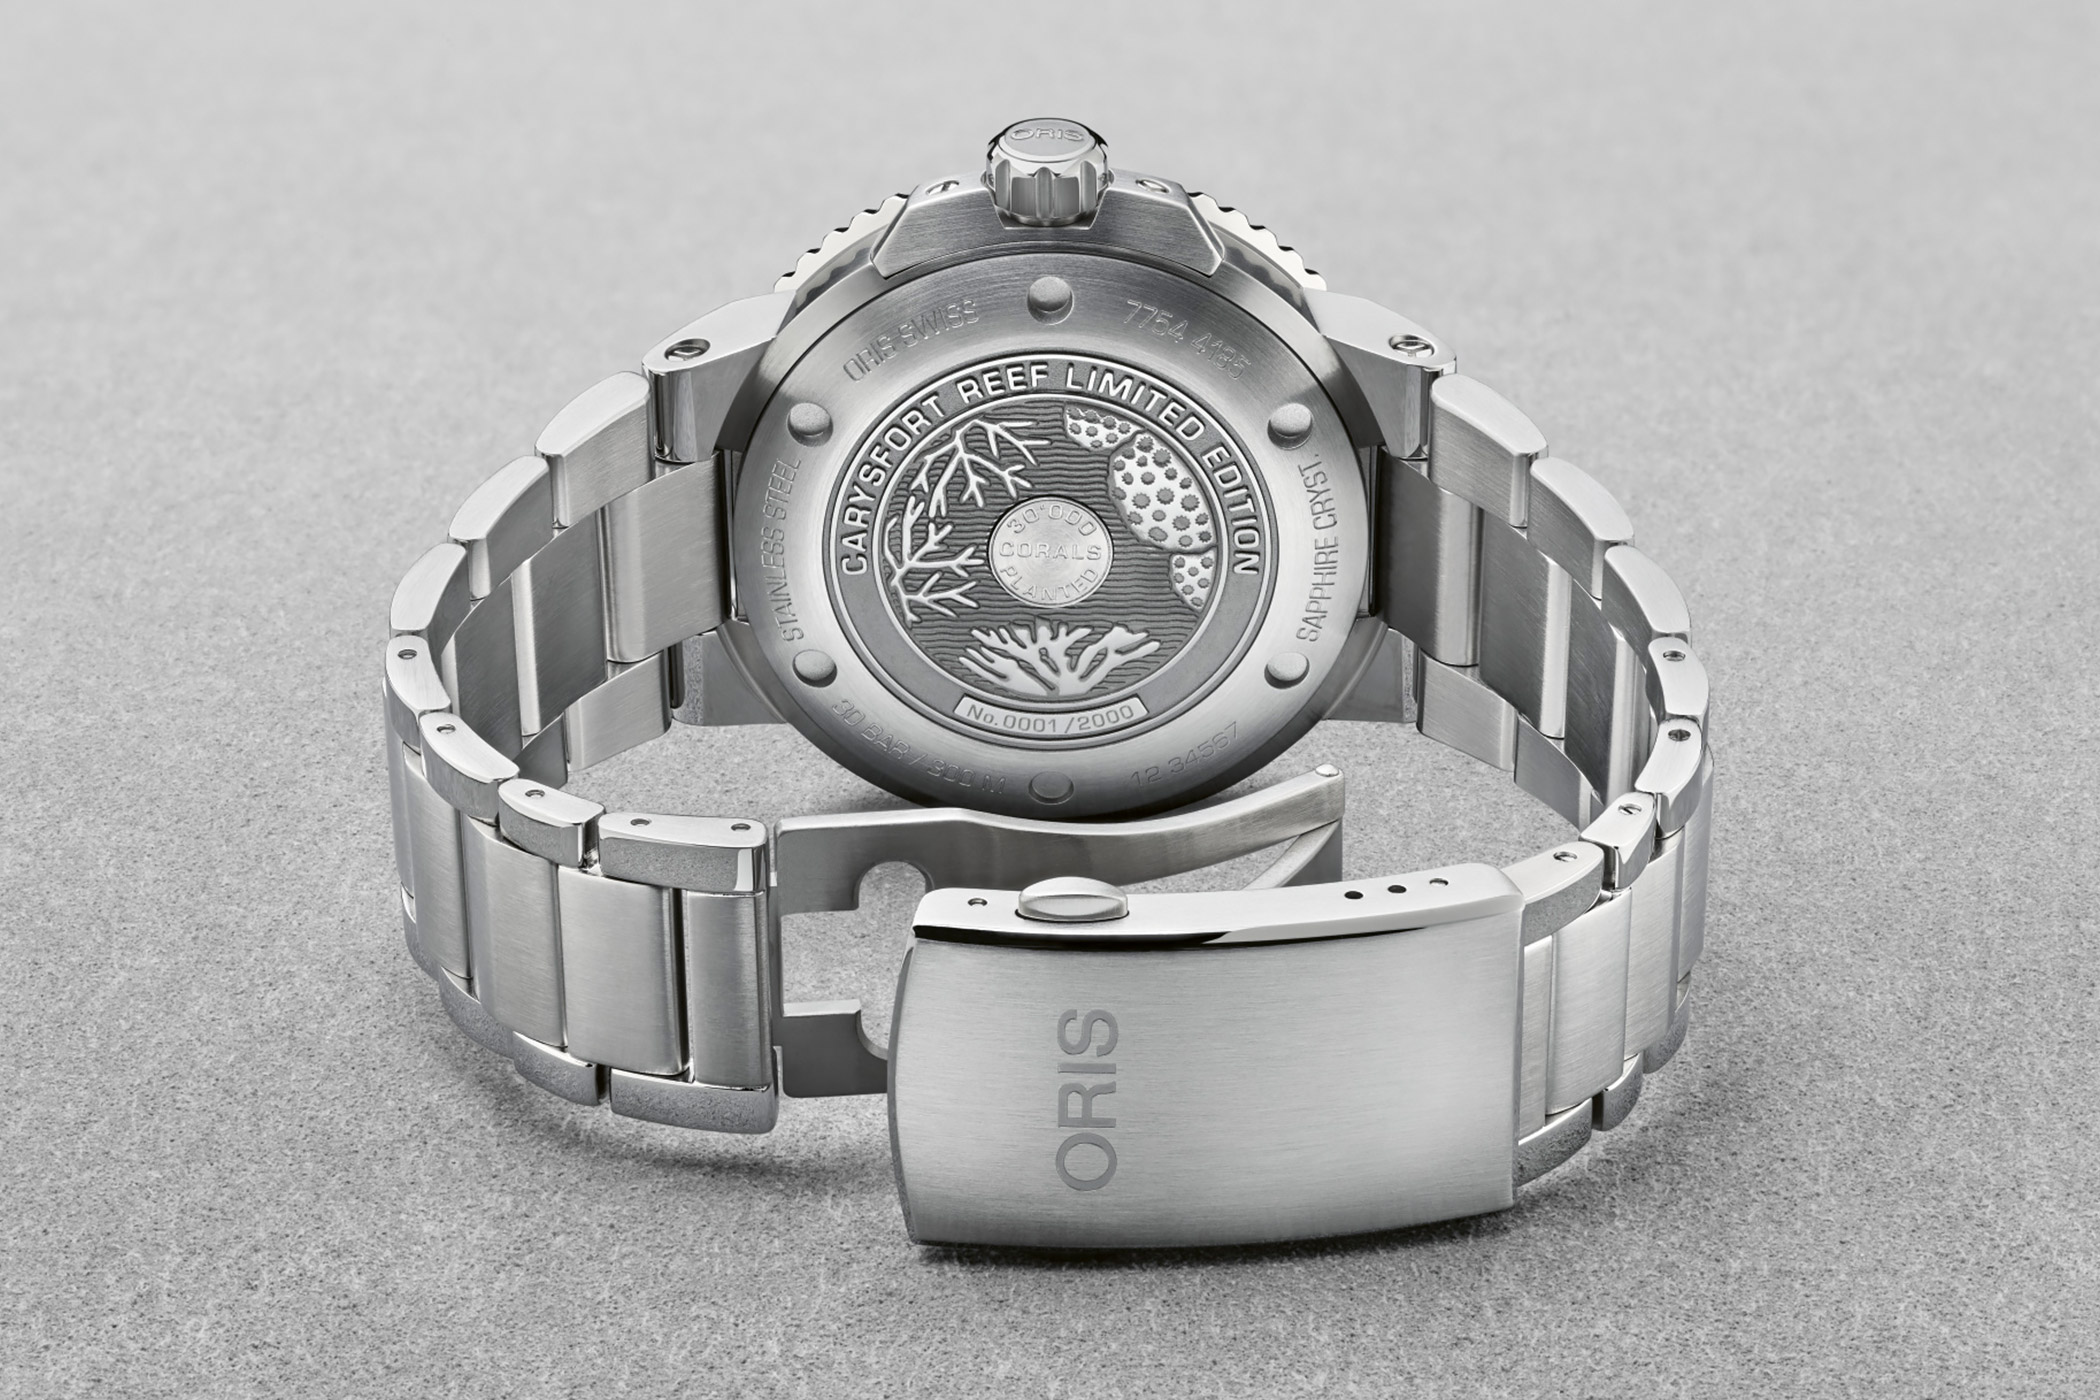 Oris-Carysfort-Reef-Limited-Edition-Support-Coral-Restoration-Foundation-2.jpg